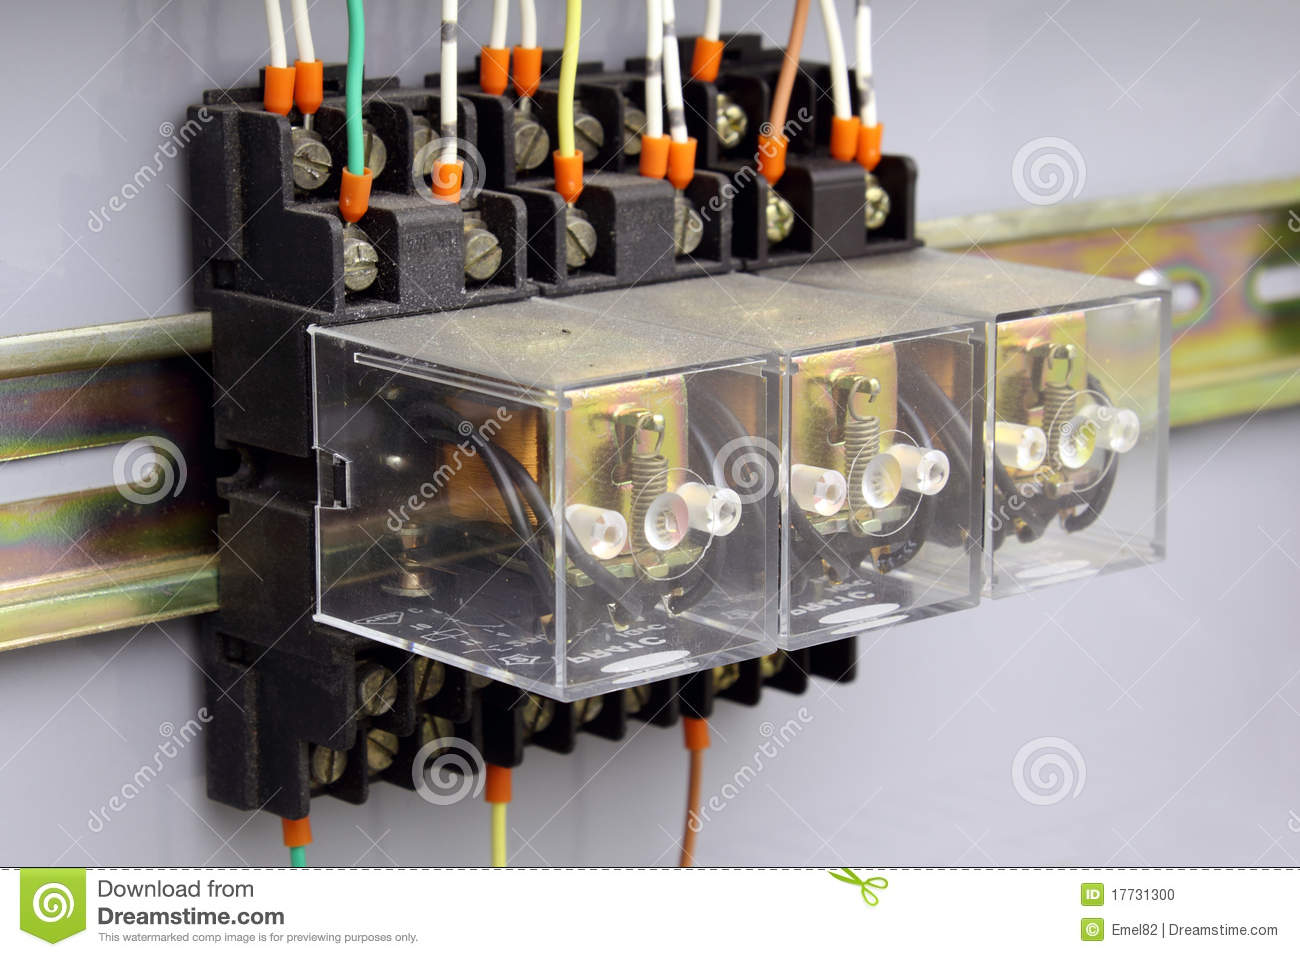 electrical relays stock photo image of electricity connection rh dreamstime com Automotive Electrical Relays Electrical Relay Diagram